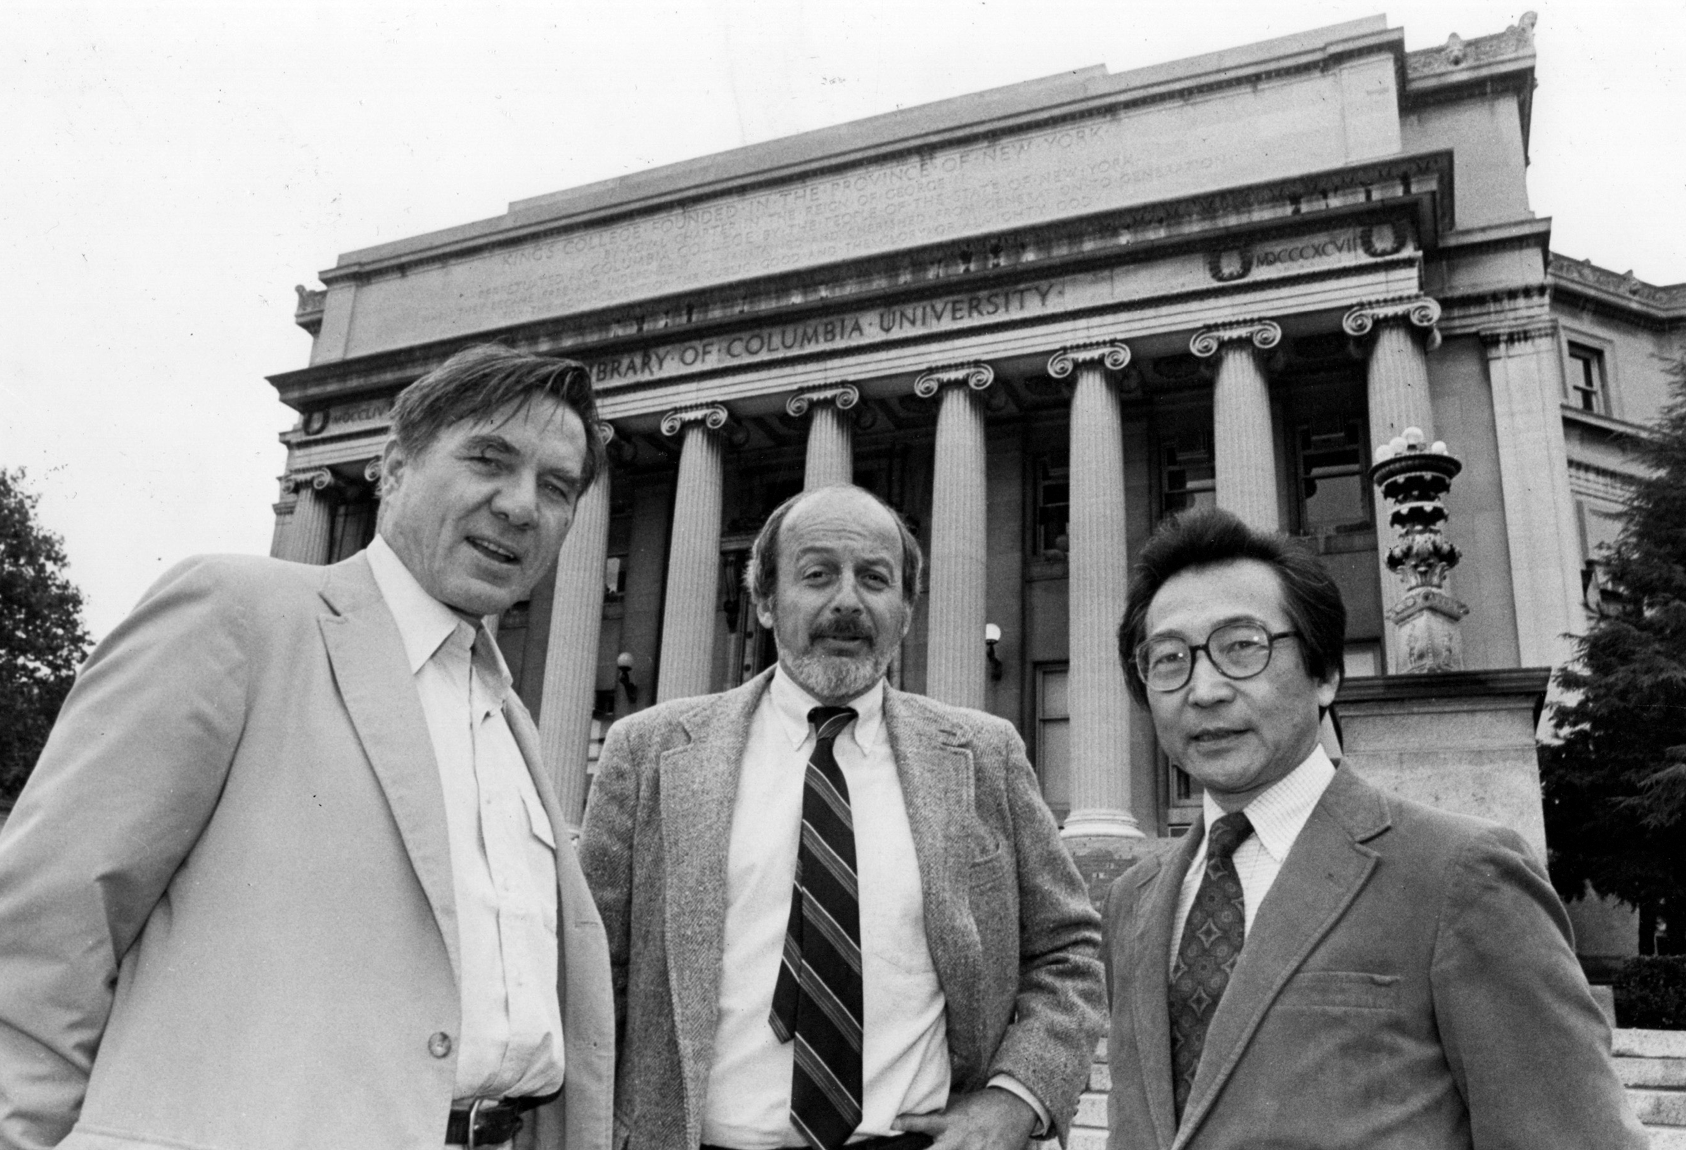 Galway Kinnell, E. L. Doctorow and Chou Wen-chung at Columbia University